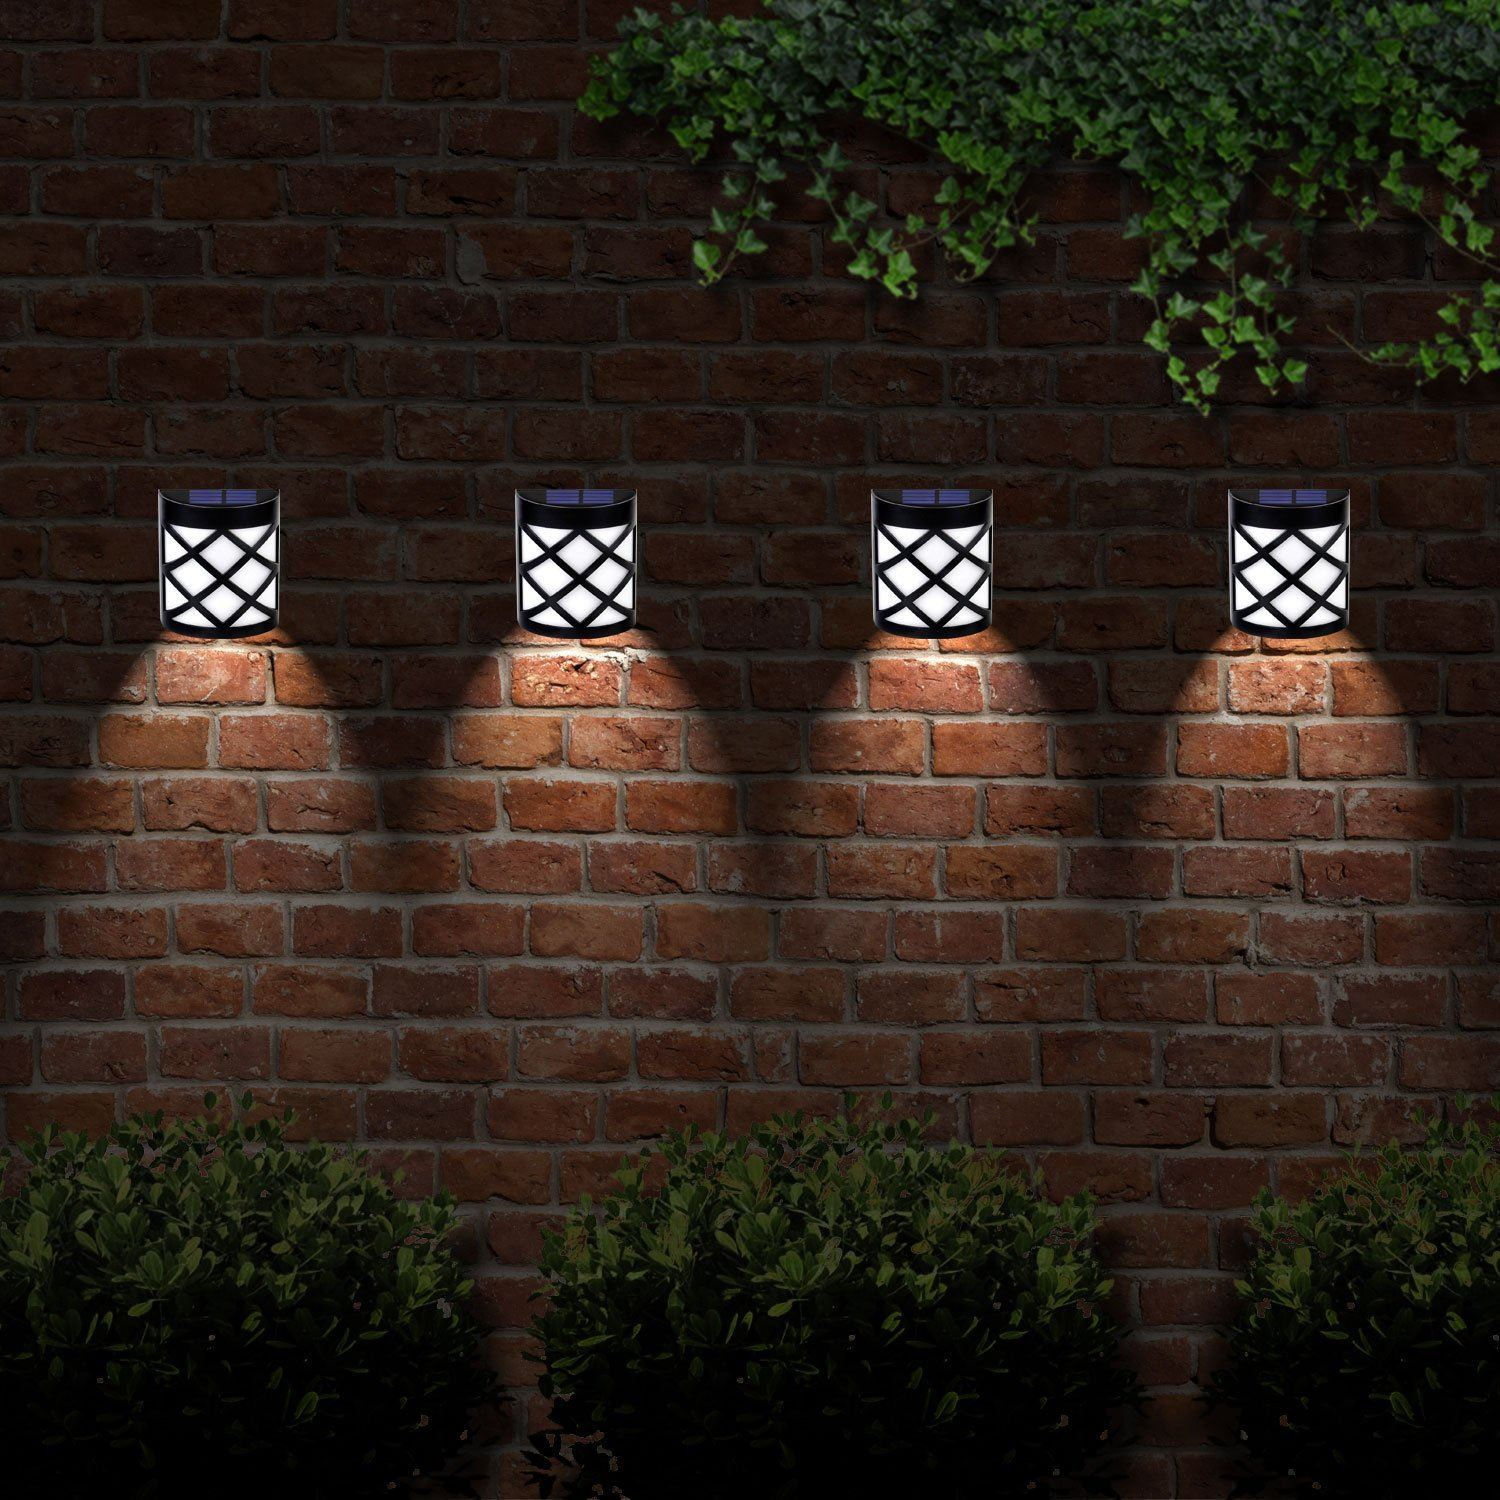 4 X Solalite? 6 Led Decorative Wireless Garden Solar Lights Weatherproof Outdoor Fence Lamps (4)